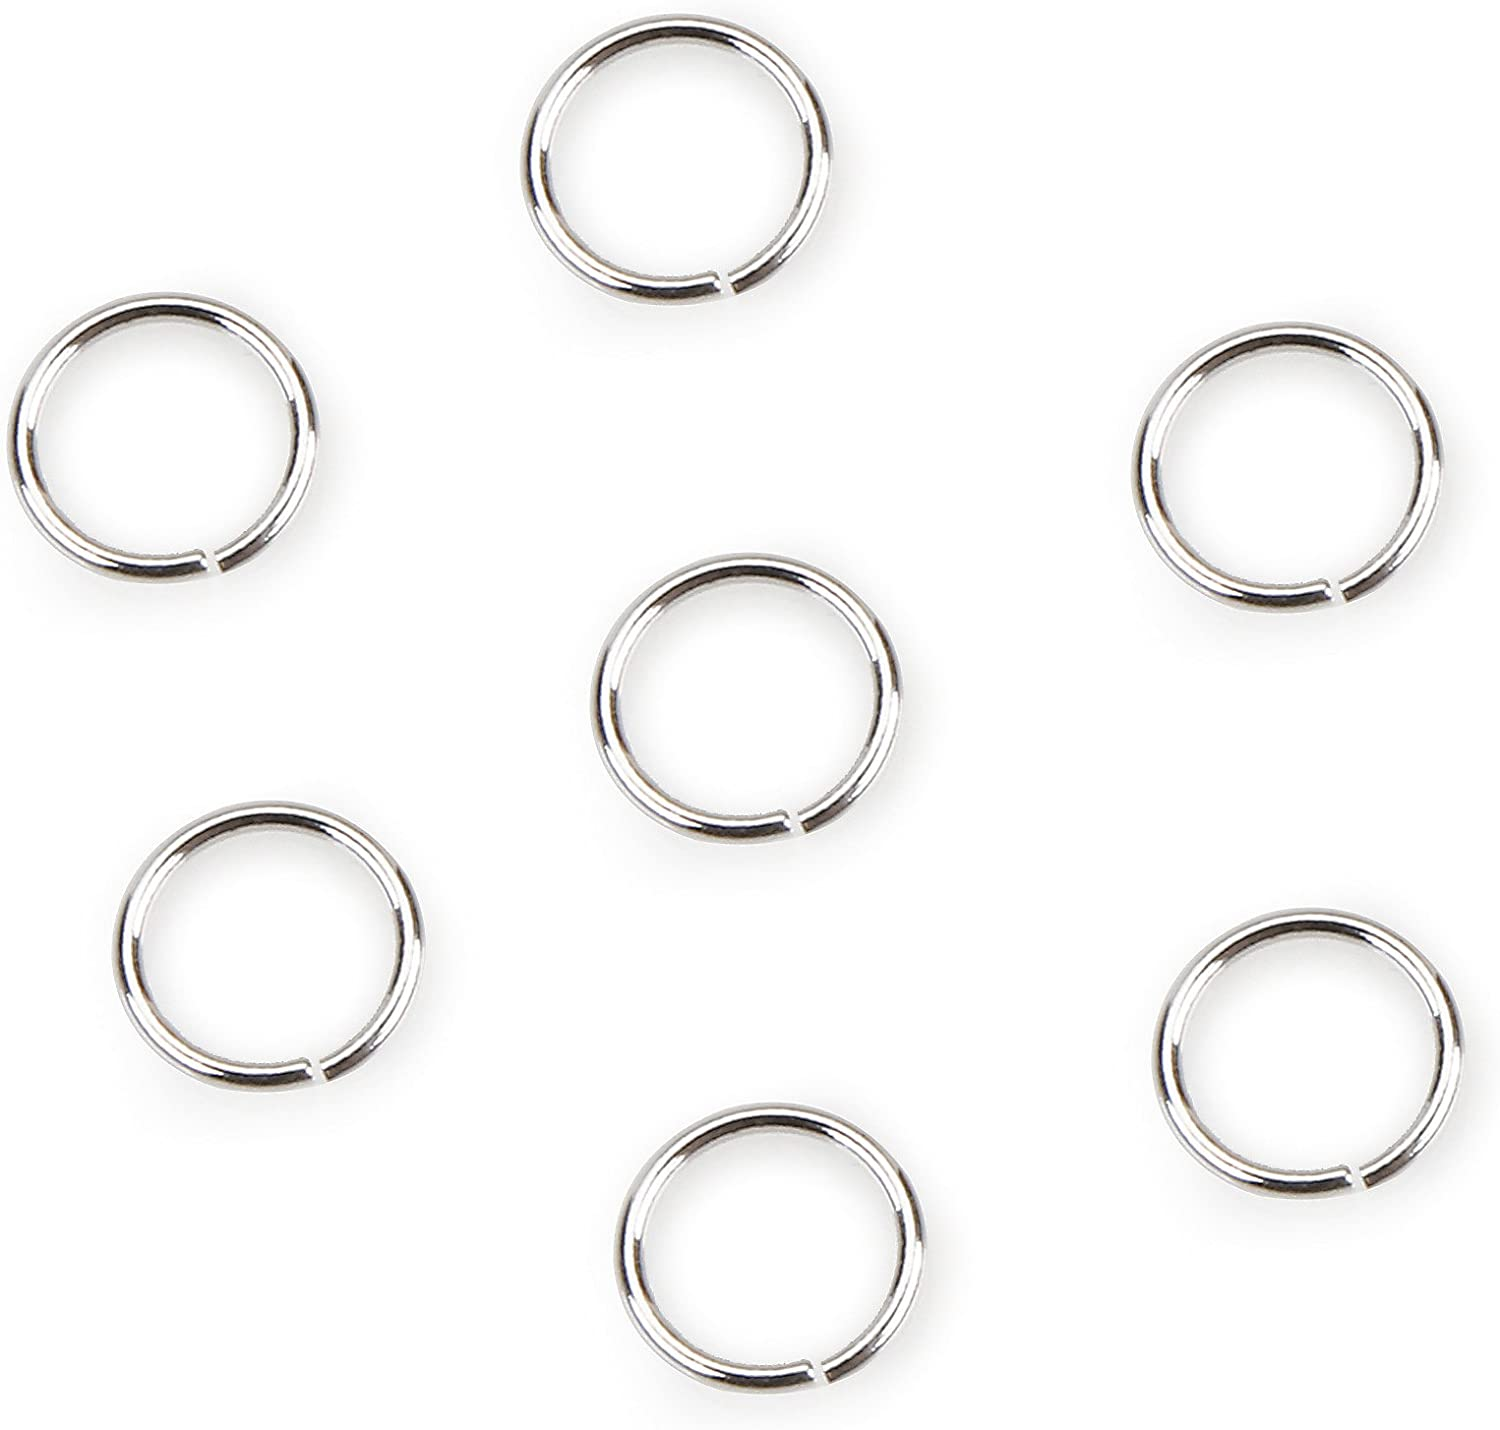 DARICE SPL1013 20-Gauge 5 ☆ Challenge the lowest price popular Sterling Plated Rings Set of 8mm Jump